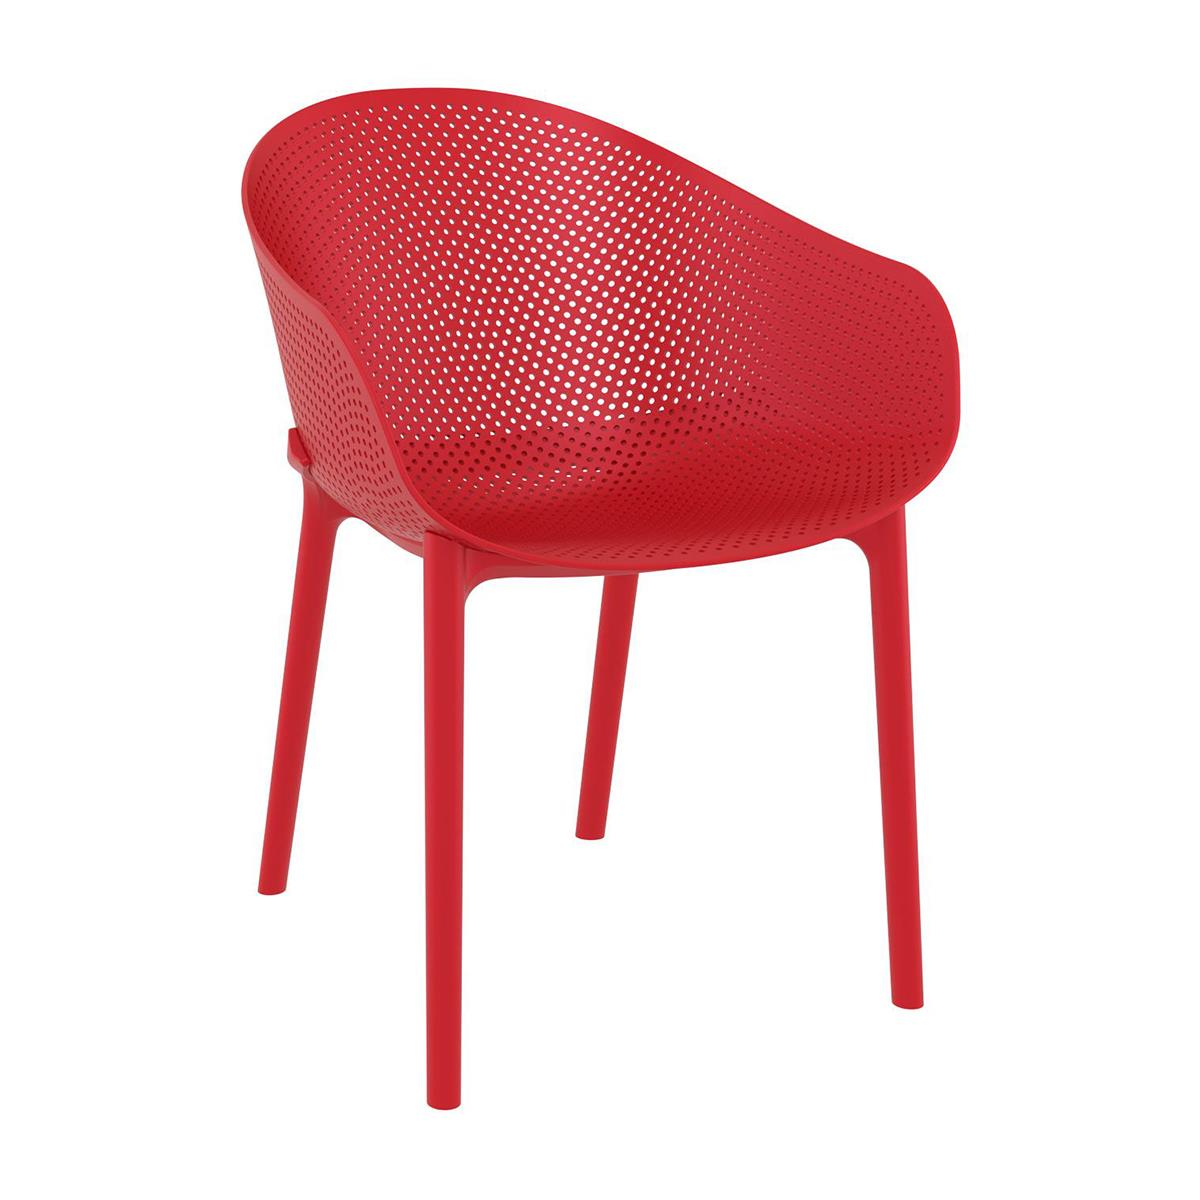 Silla de Confidente DYNA, Reposabrazos Integrados, Moderno Diseño, color Rojo